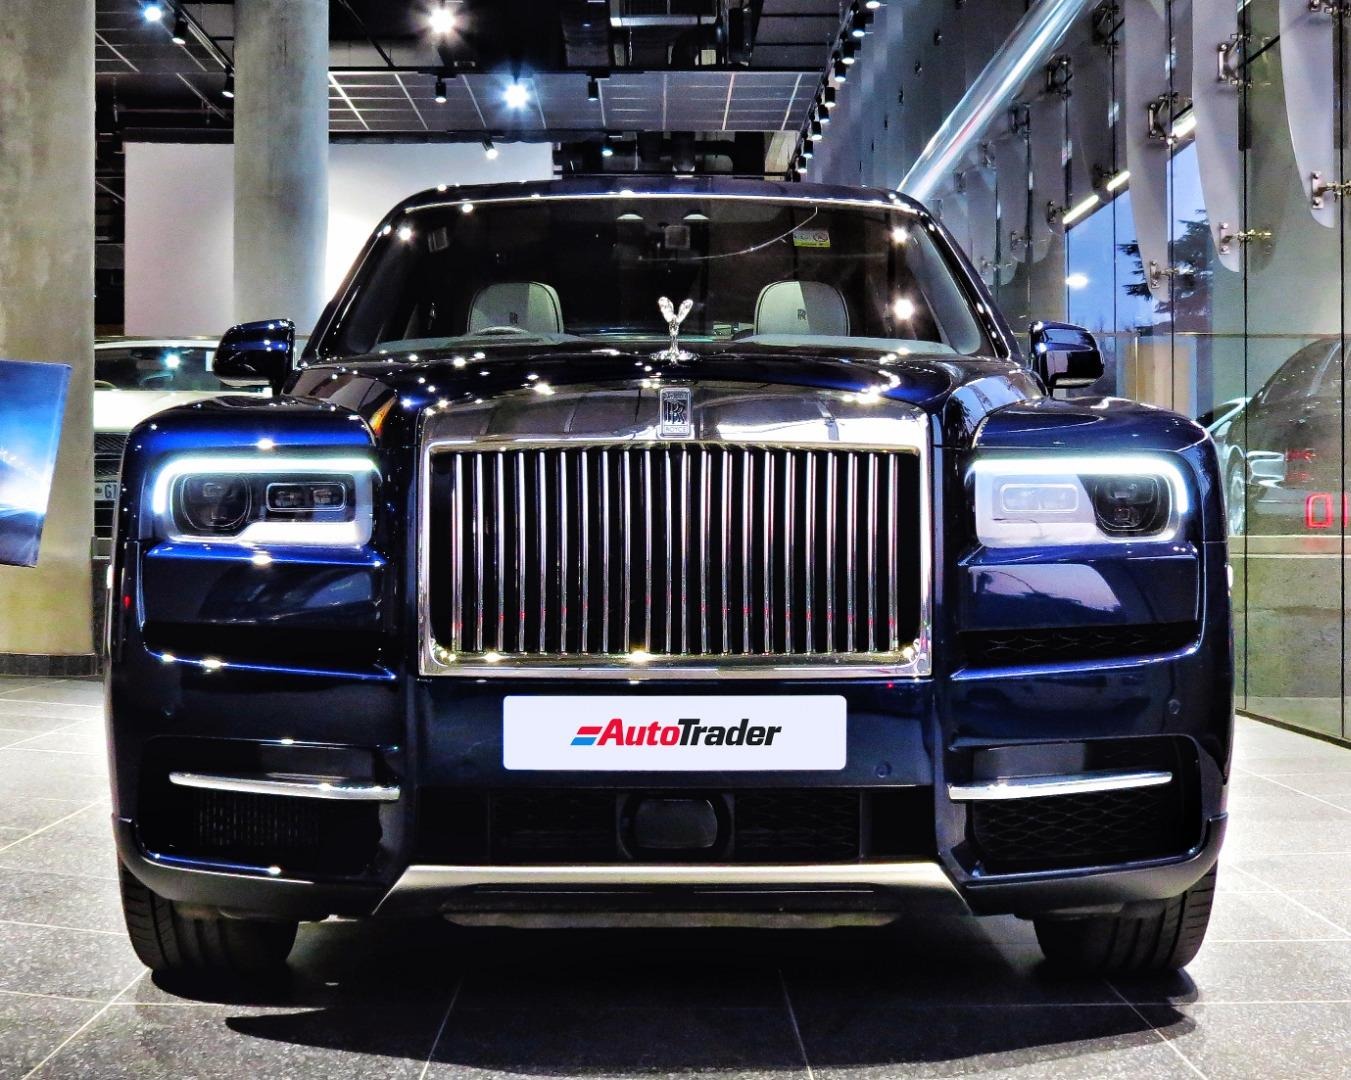 The Crown Jewel Of Suvs Rolls Royce Cullinan Expert Rolls Royce Car Reviews Autotrader